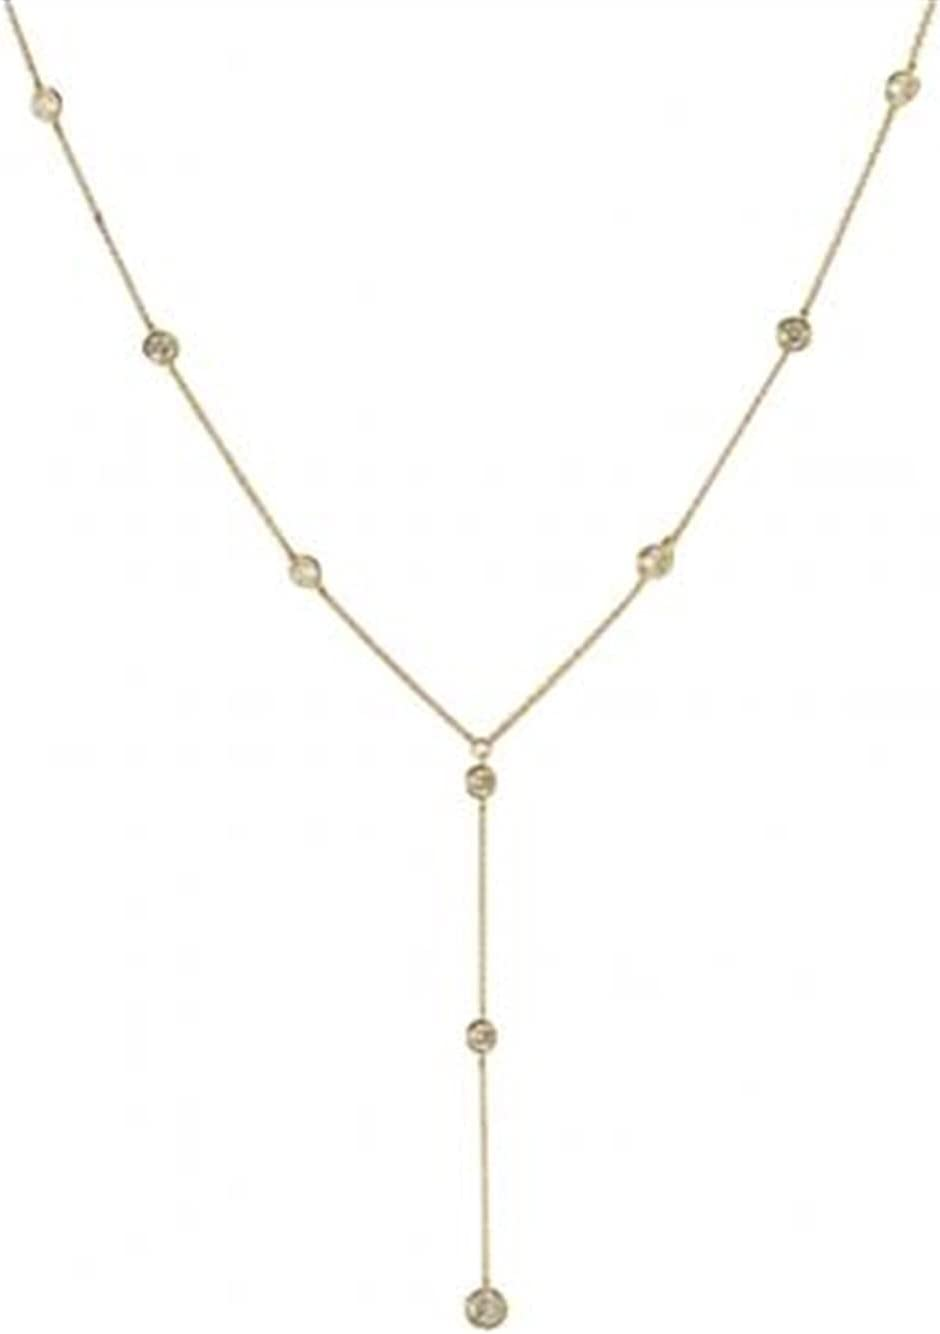 ZHBO Rhinestone Inlaid Long Drop Bridal Back Necklace Lady Body Chain Wedding Jewelry Necklace for Women for Women (Metal Color : Golden)